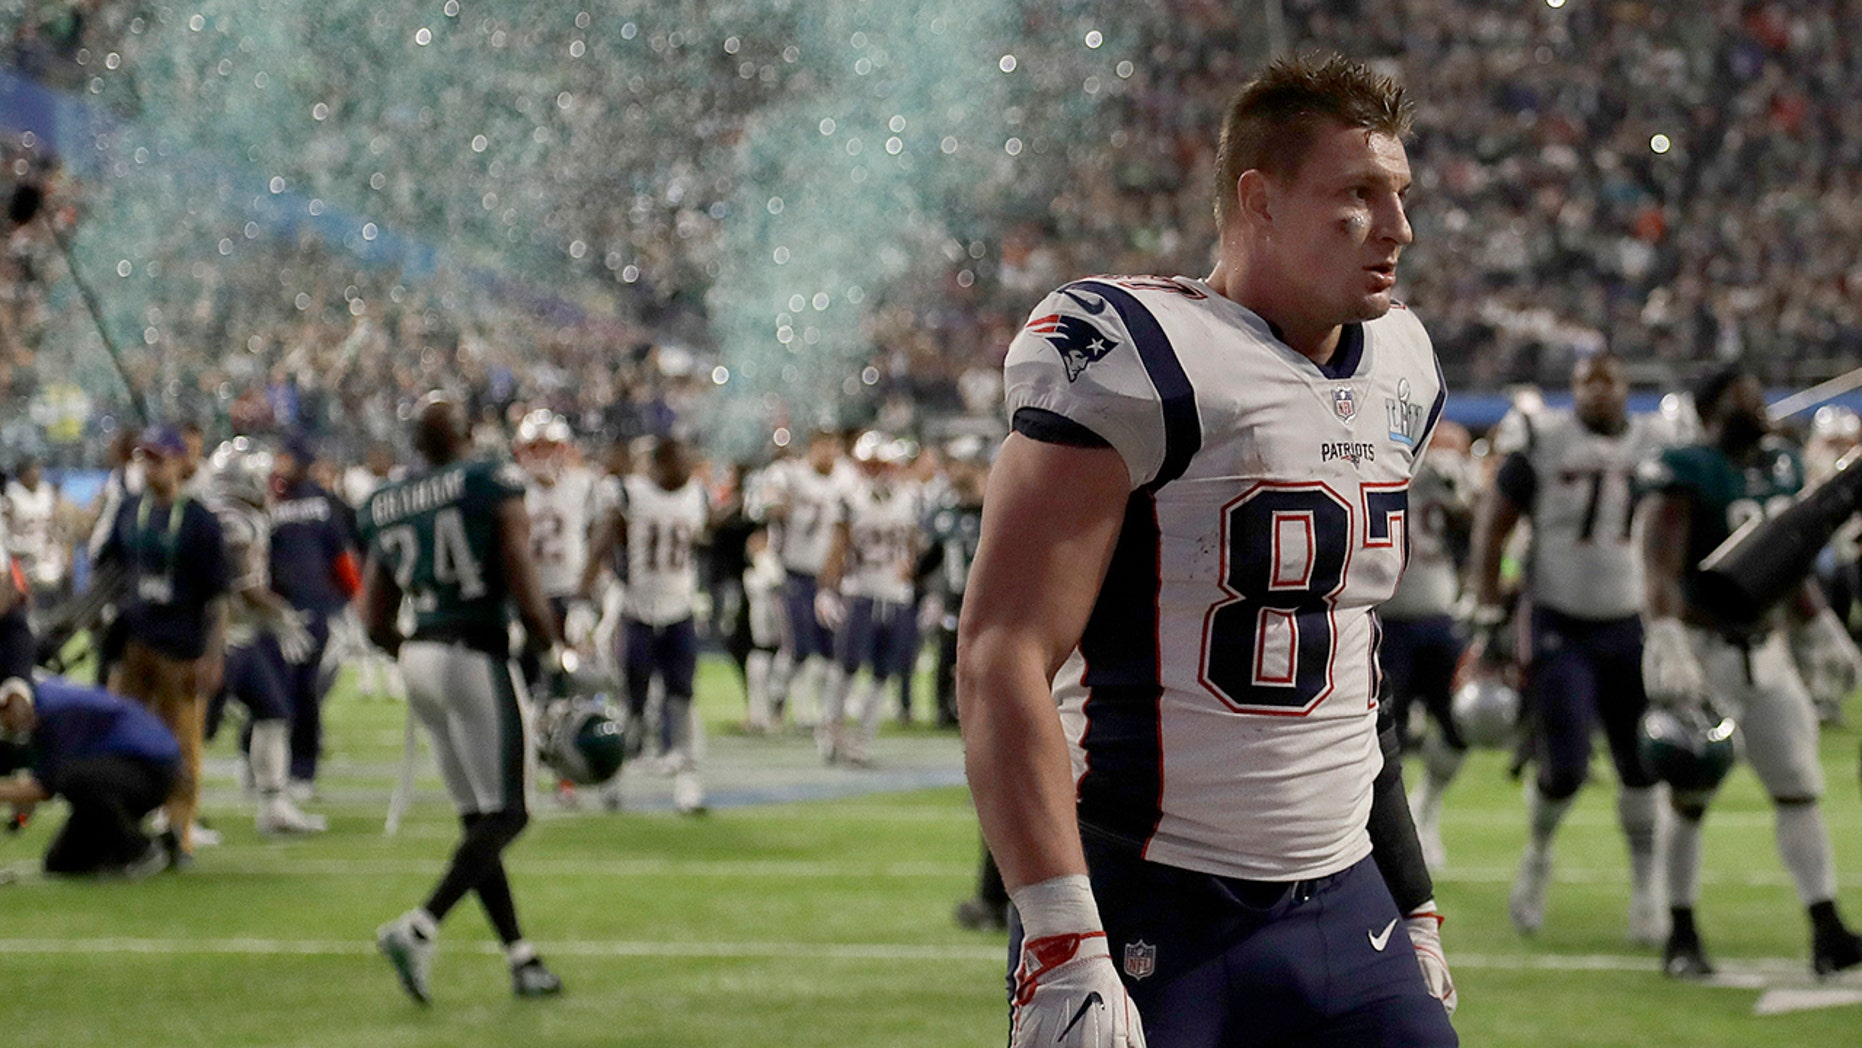 New England Patriots star Rob Gronkowski walks off the field after his team's Super Bowl LII loss to the Philadelphia Eagles, Feb. 4, 2018, in Minneapolis.